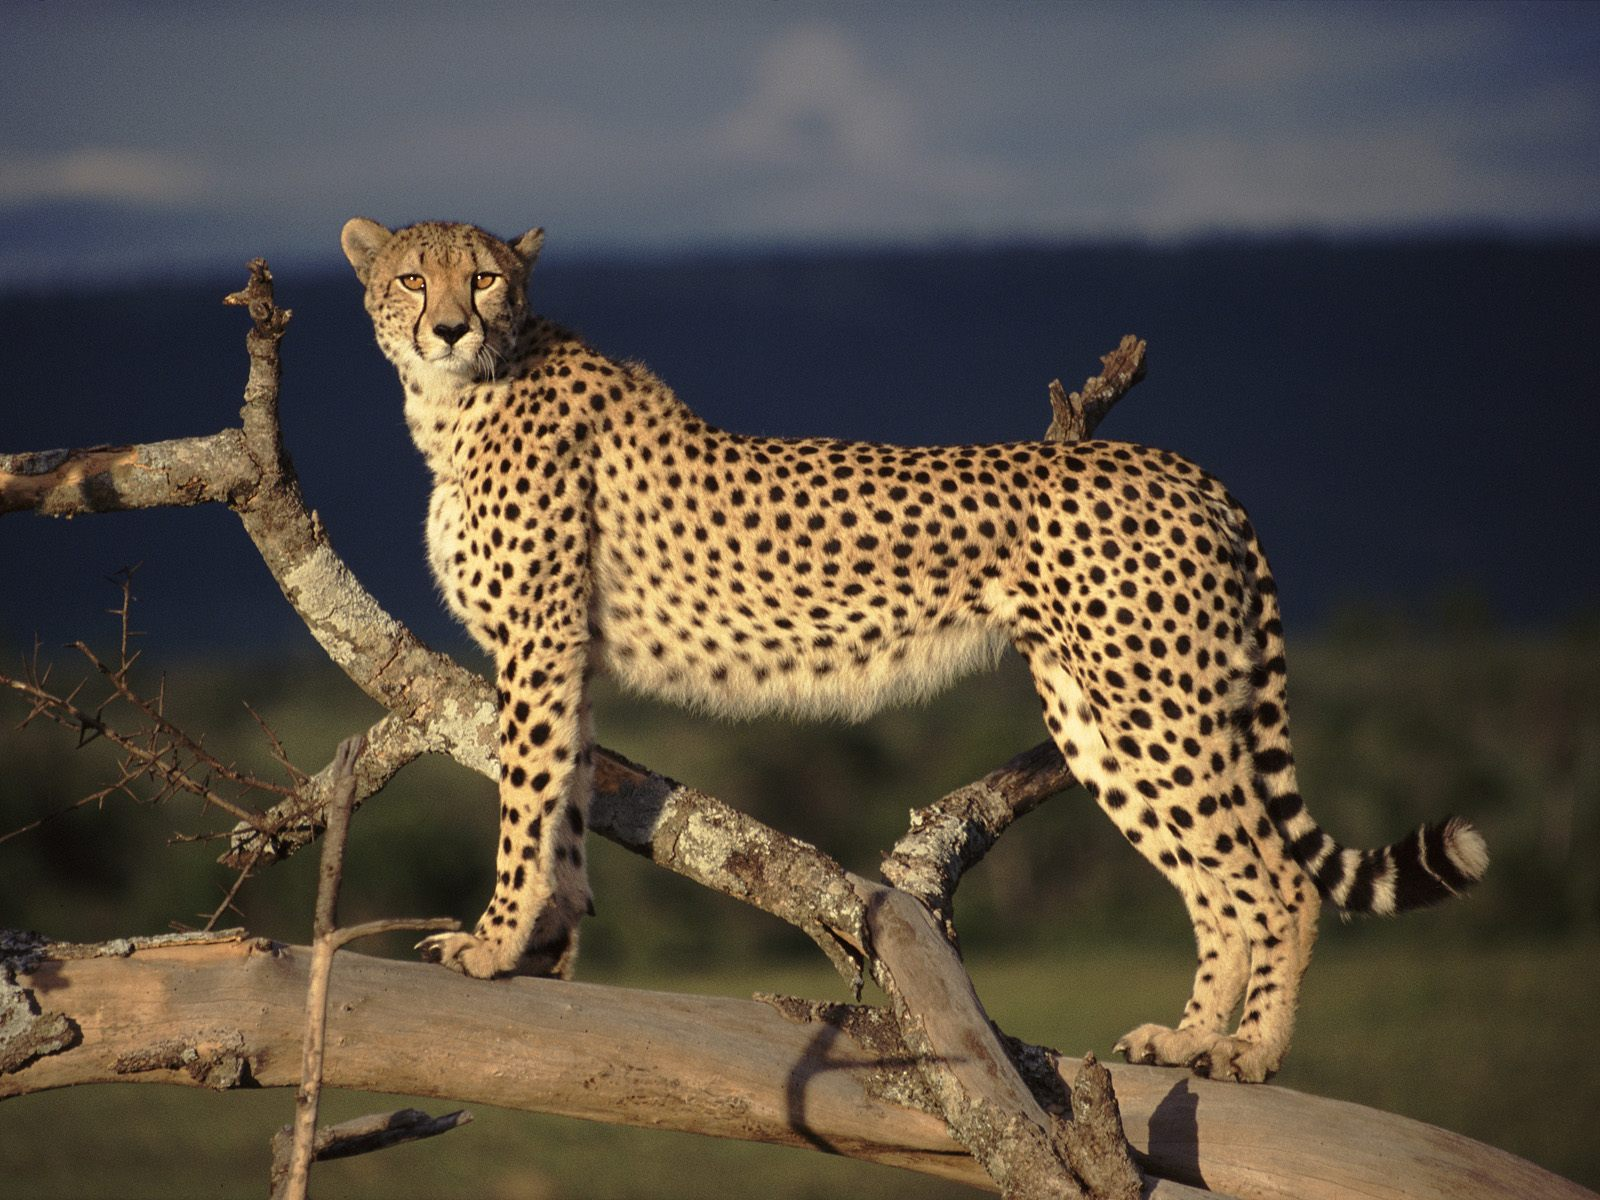 pictures of cheetahs running